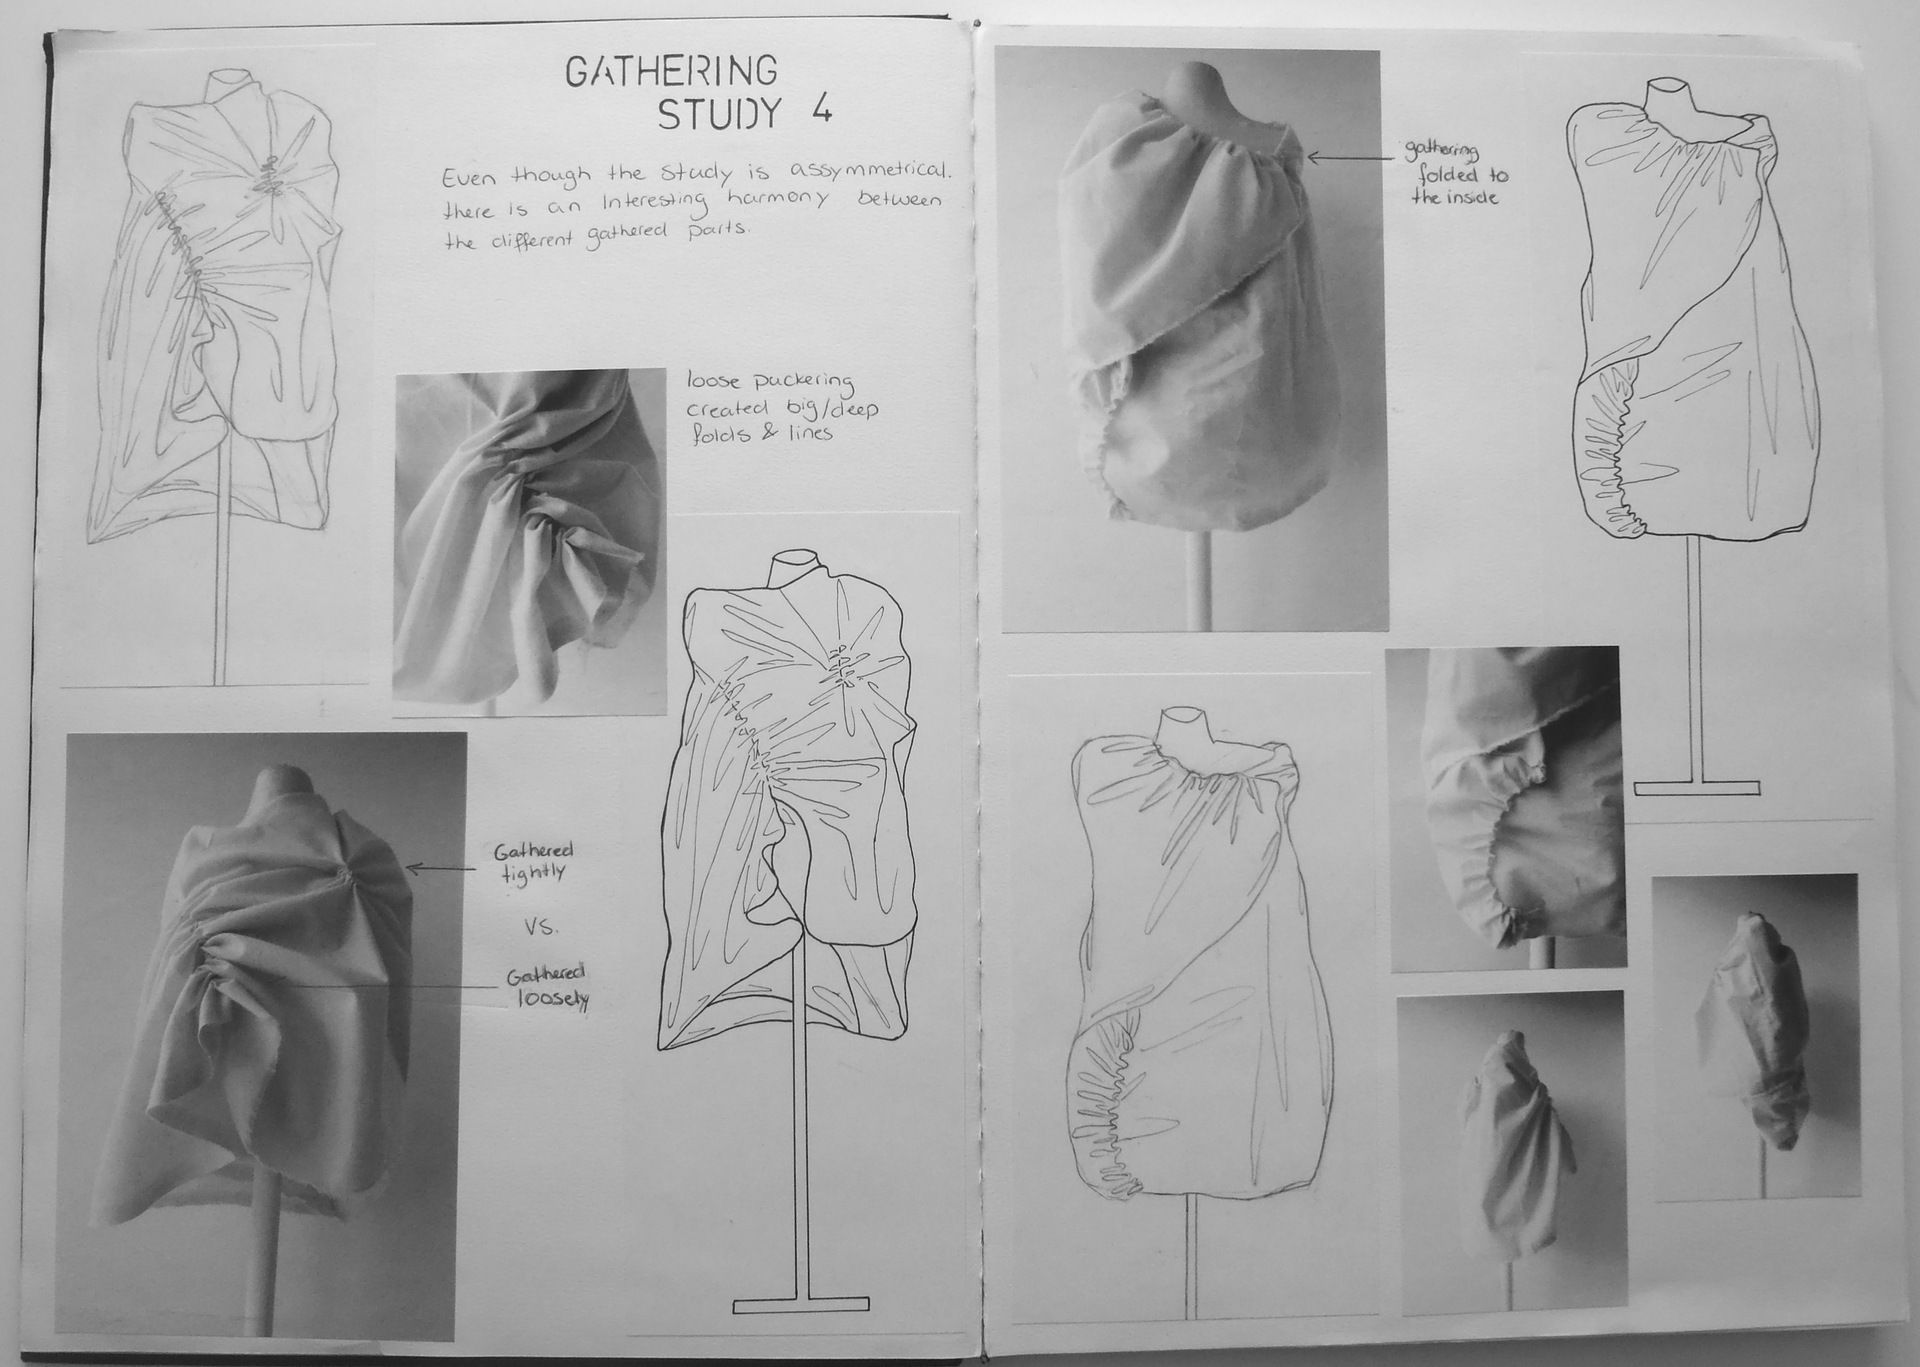 Fashion Sketchbook Exploring Gathering Fabric Manipulation Techniques Fashion Design Prototype D Sketch Book Fashion Design Sketchbook Fashion Sketchbook